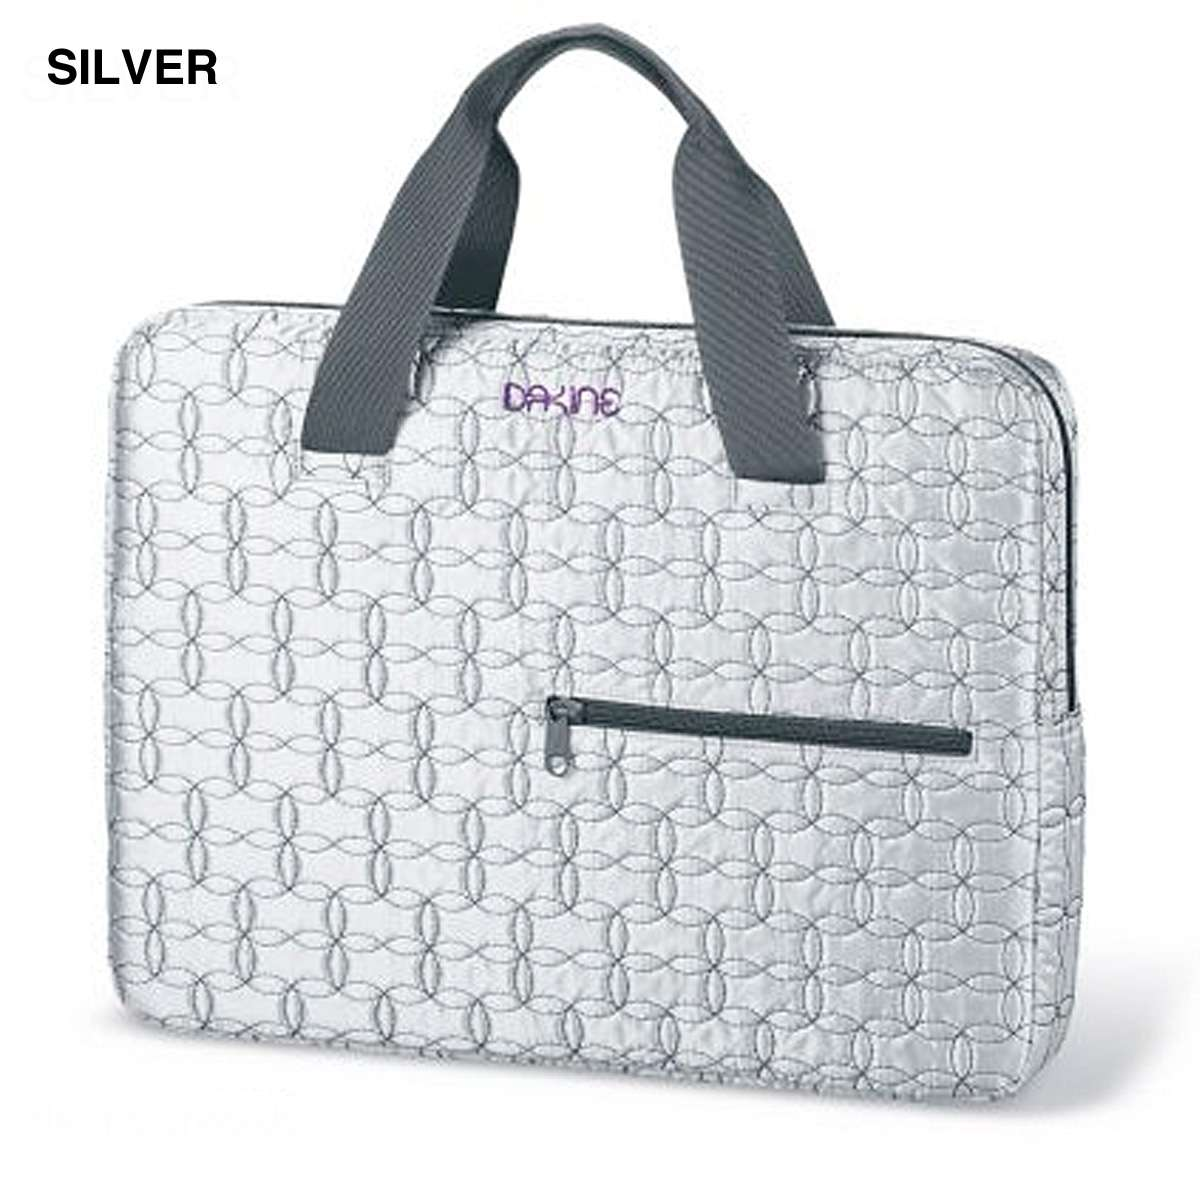 Dakine Quilted Laptop Tote Small Damen Laptopsleeve Silver ... : quilted laptop tote - Adamdwight.com